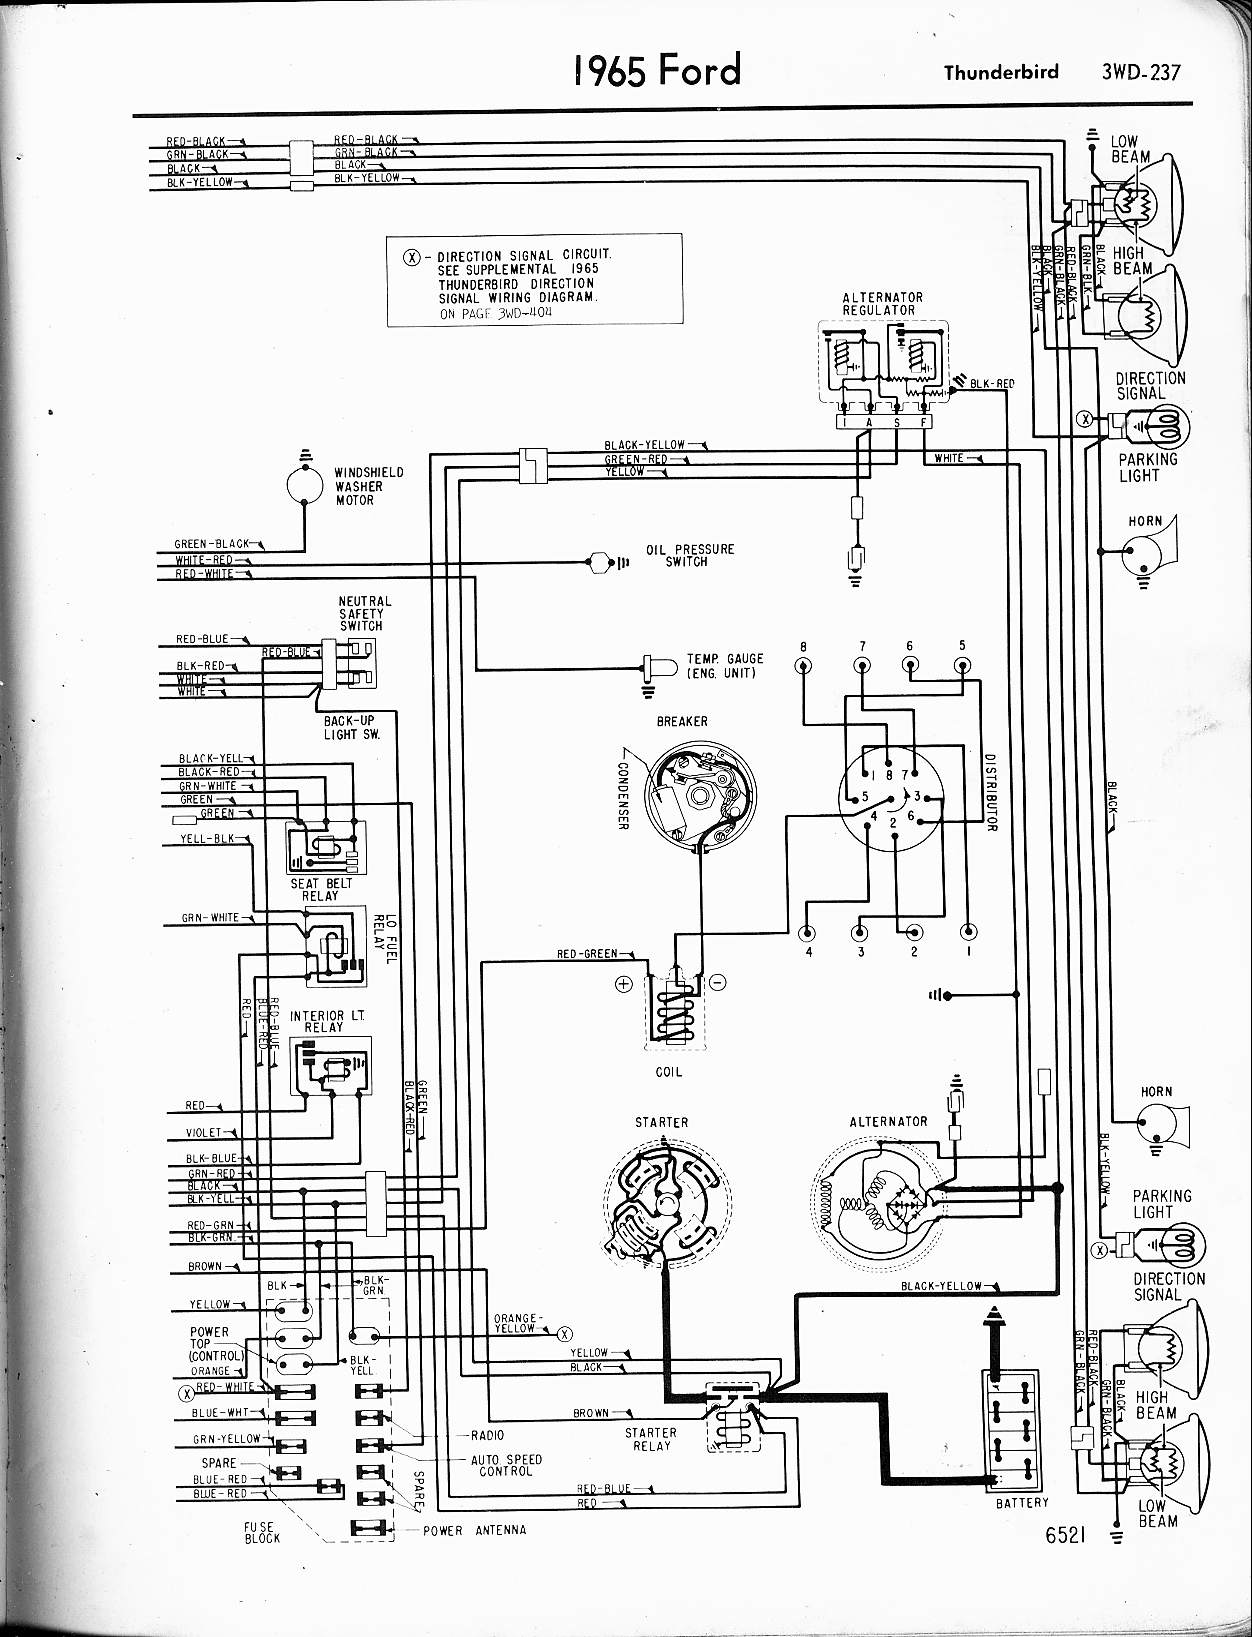 57 65 Ford Wiring Diagrams 1967 Fairlane Engine Wiring 1960 Ford Radio  Wiring